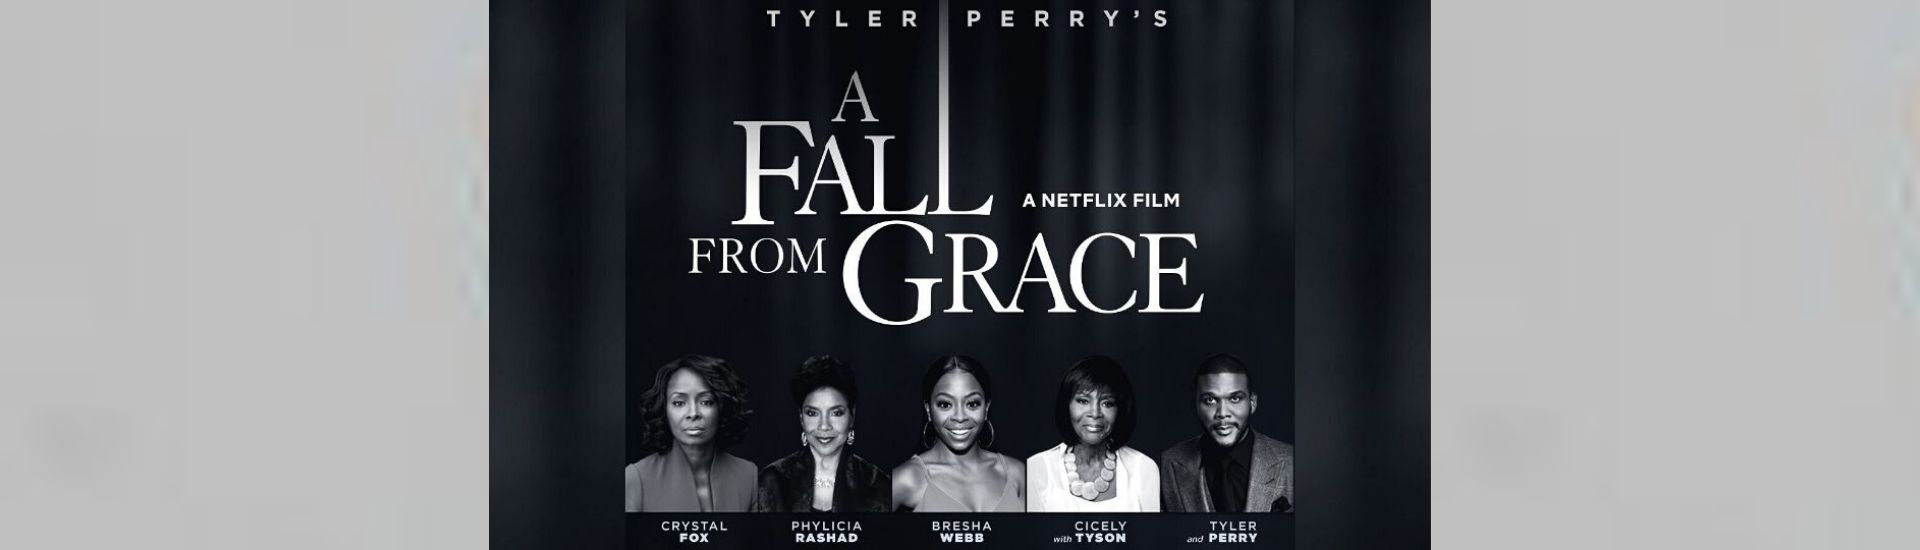 "Point de vue sur ""A Fall From Grace"" de Tyler Perry"